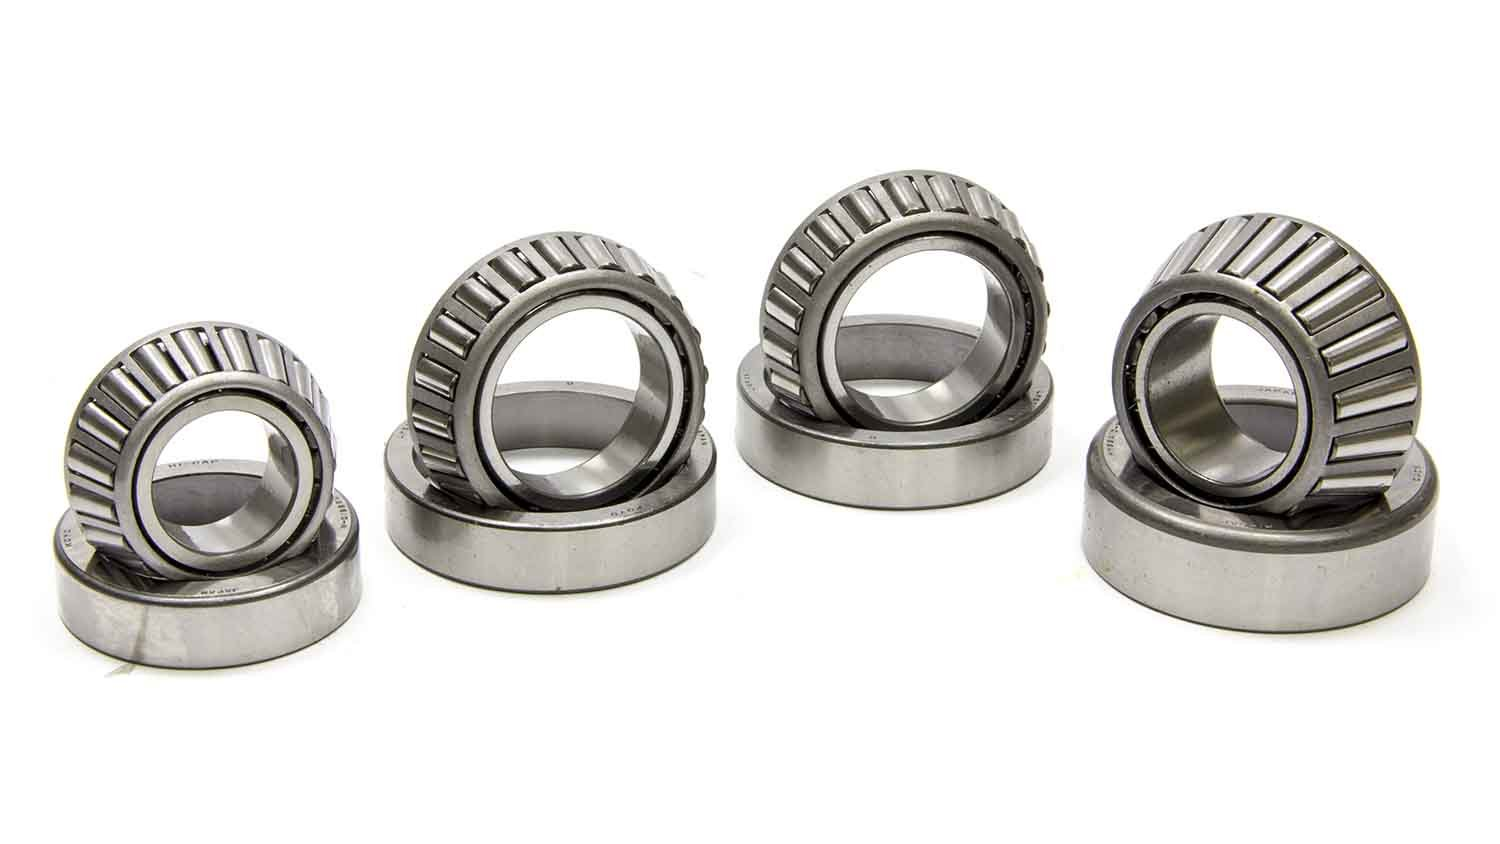 Ratech 208B Bearing Kit